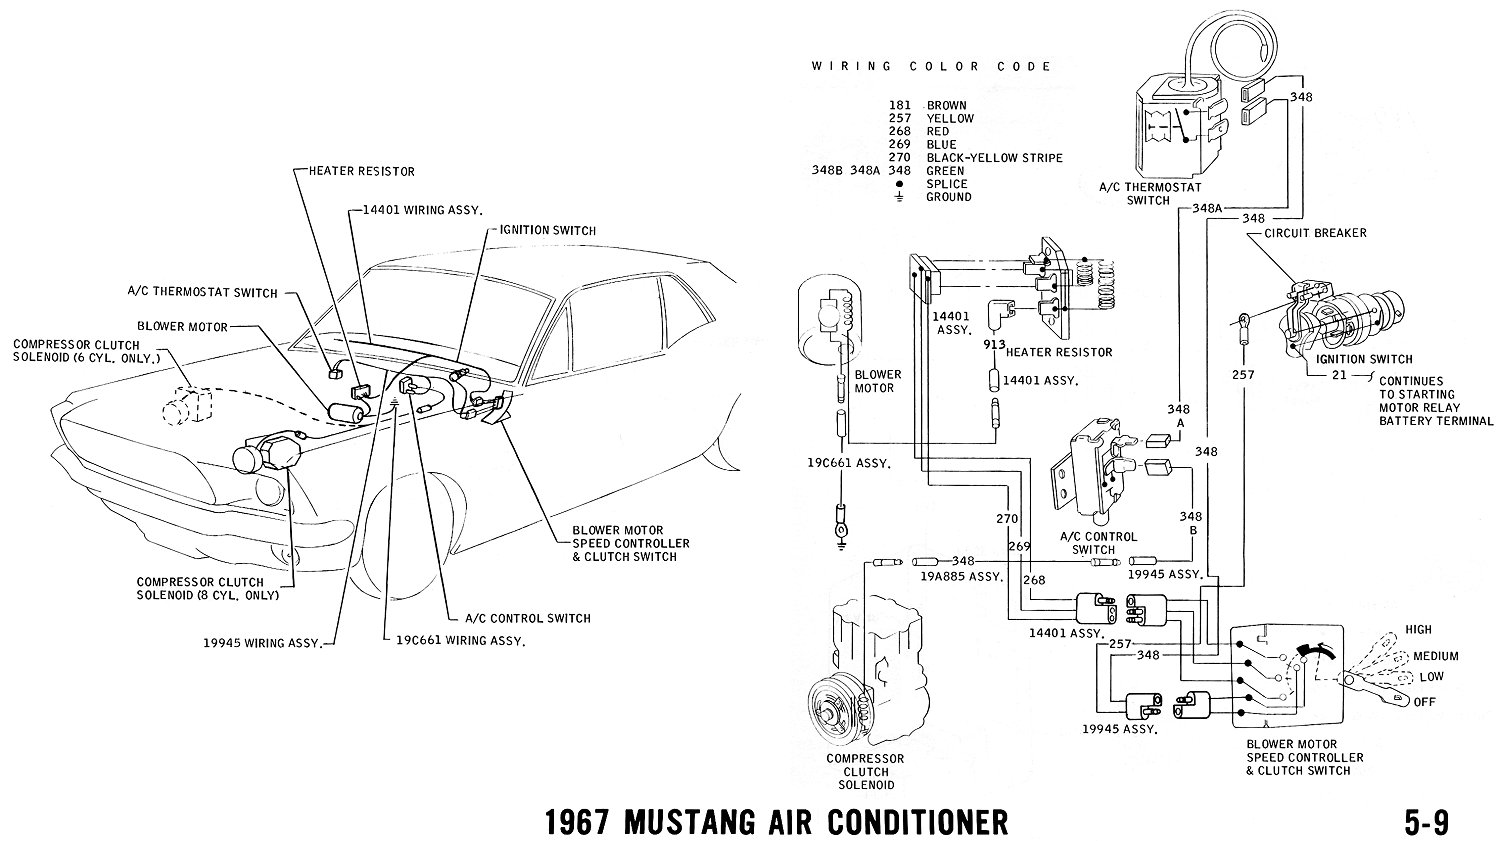 hight resolution of 1967 mustang air conditioner pictorial and schematic